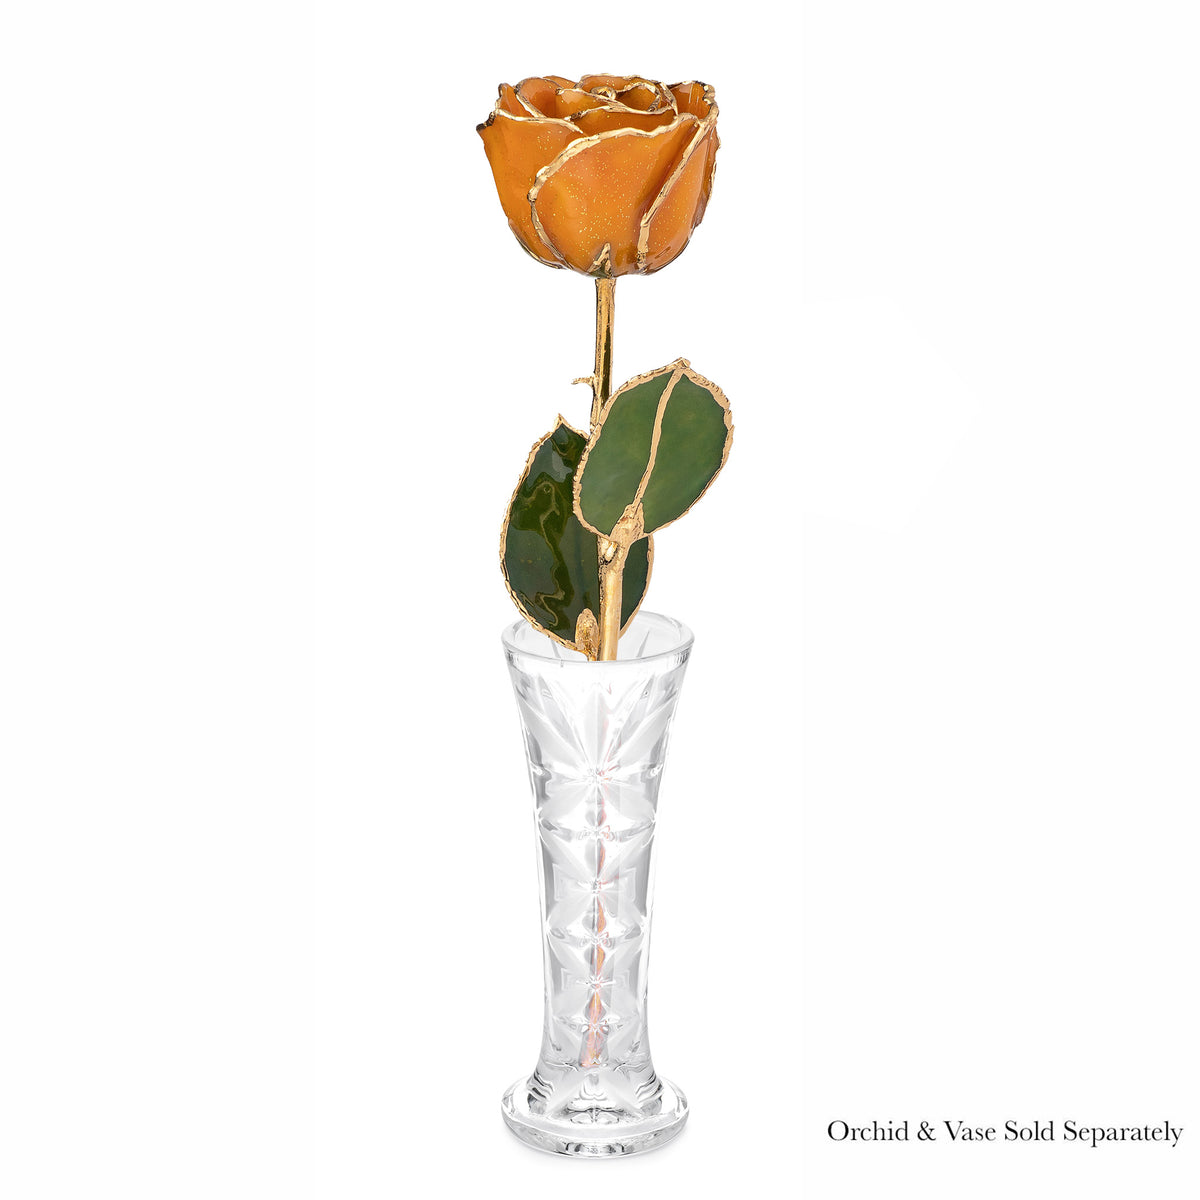 24K Gold Trimmed Forever Rose with Topaz or Citrine (Amber color) Petals with Gold colored Suspended Sparkles. View of Stem, Leaves, and Rose Petals and Showing Detail of Gold Trim. Shown with optional crystal bud vase